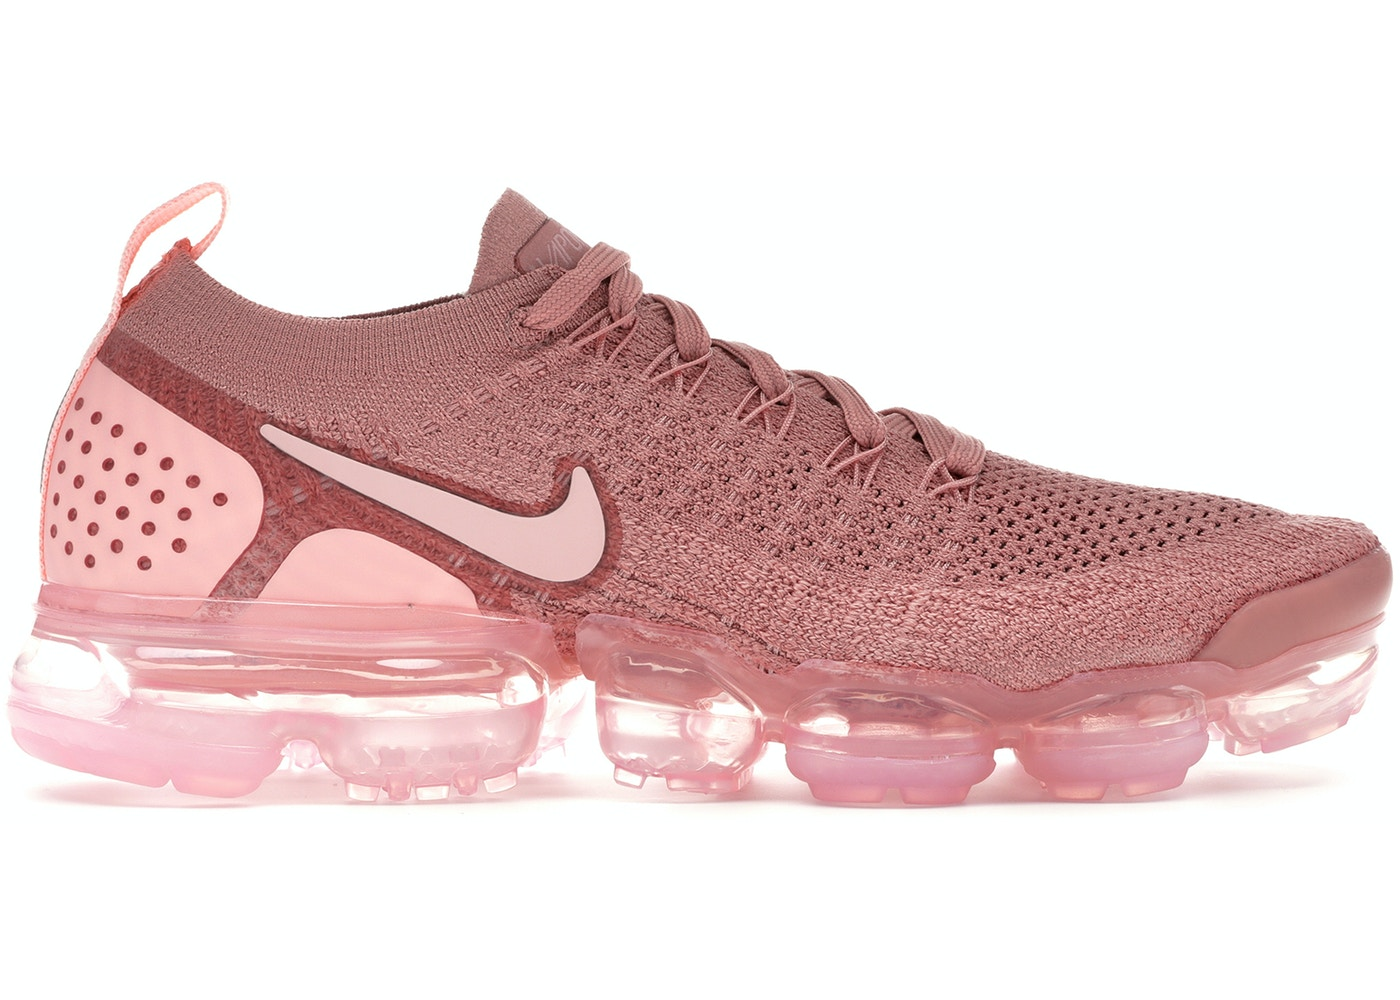 outlet store 544c3 0de65 Buy Nike Air Max VaporMax Shoes   Deadstock Sneakers